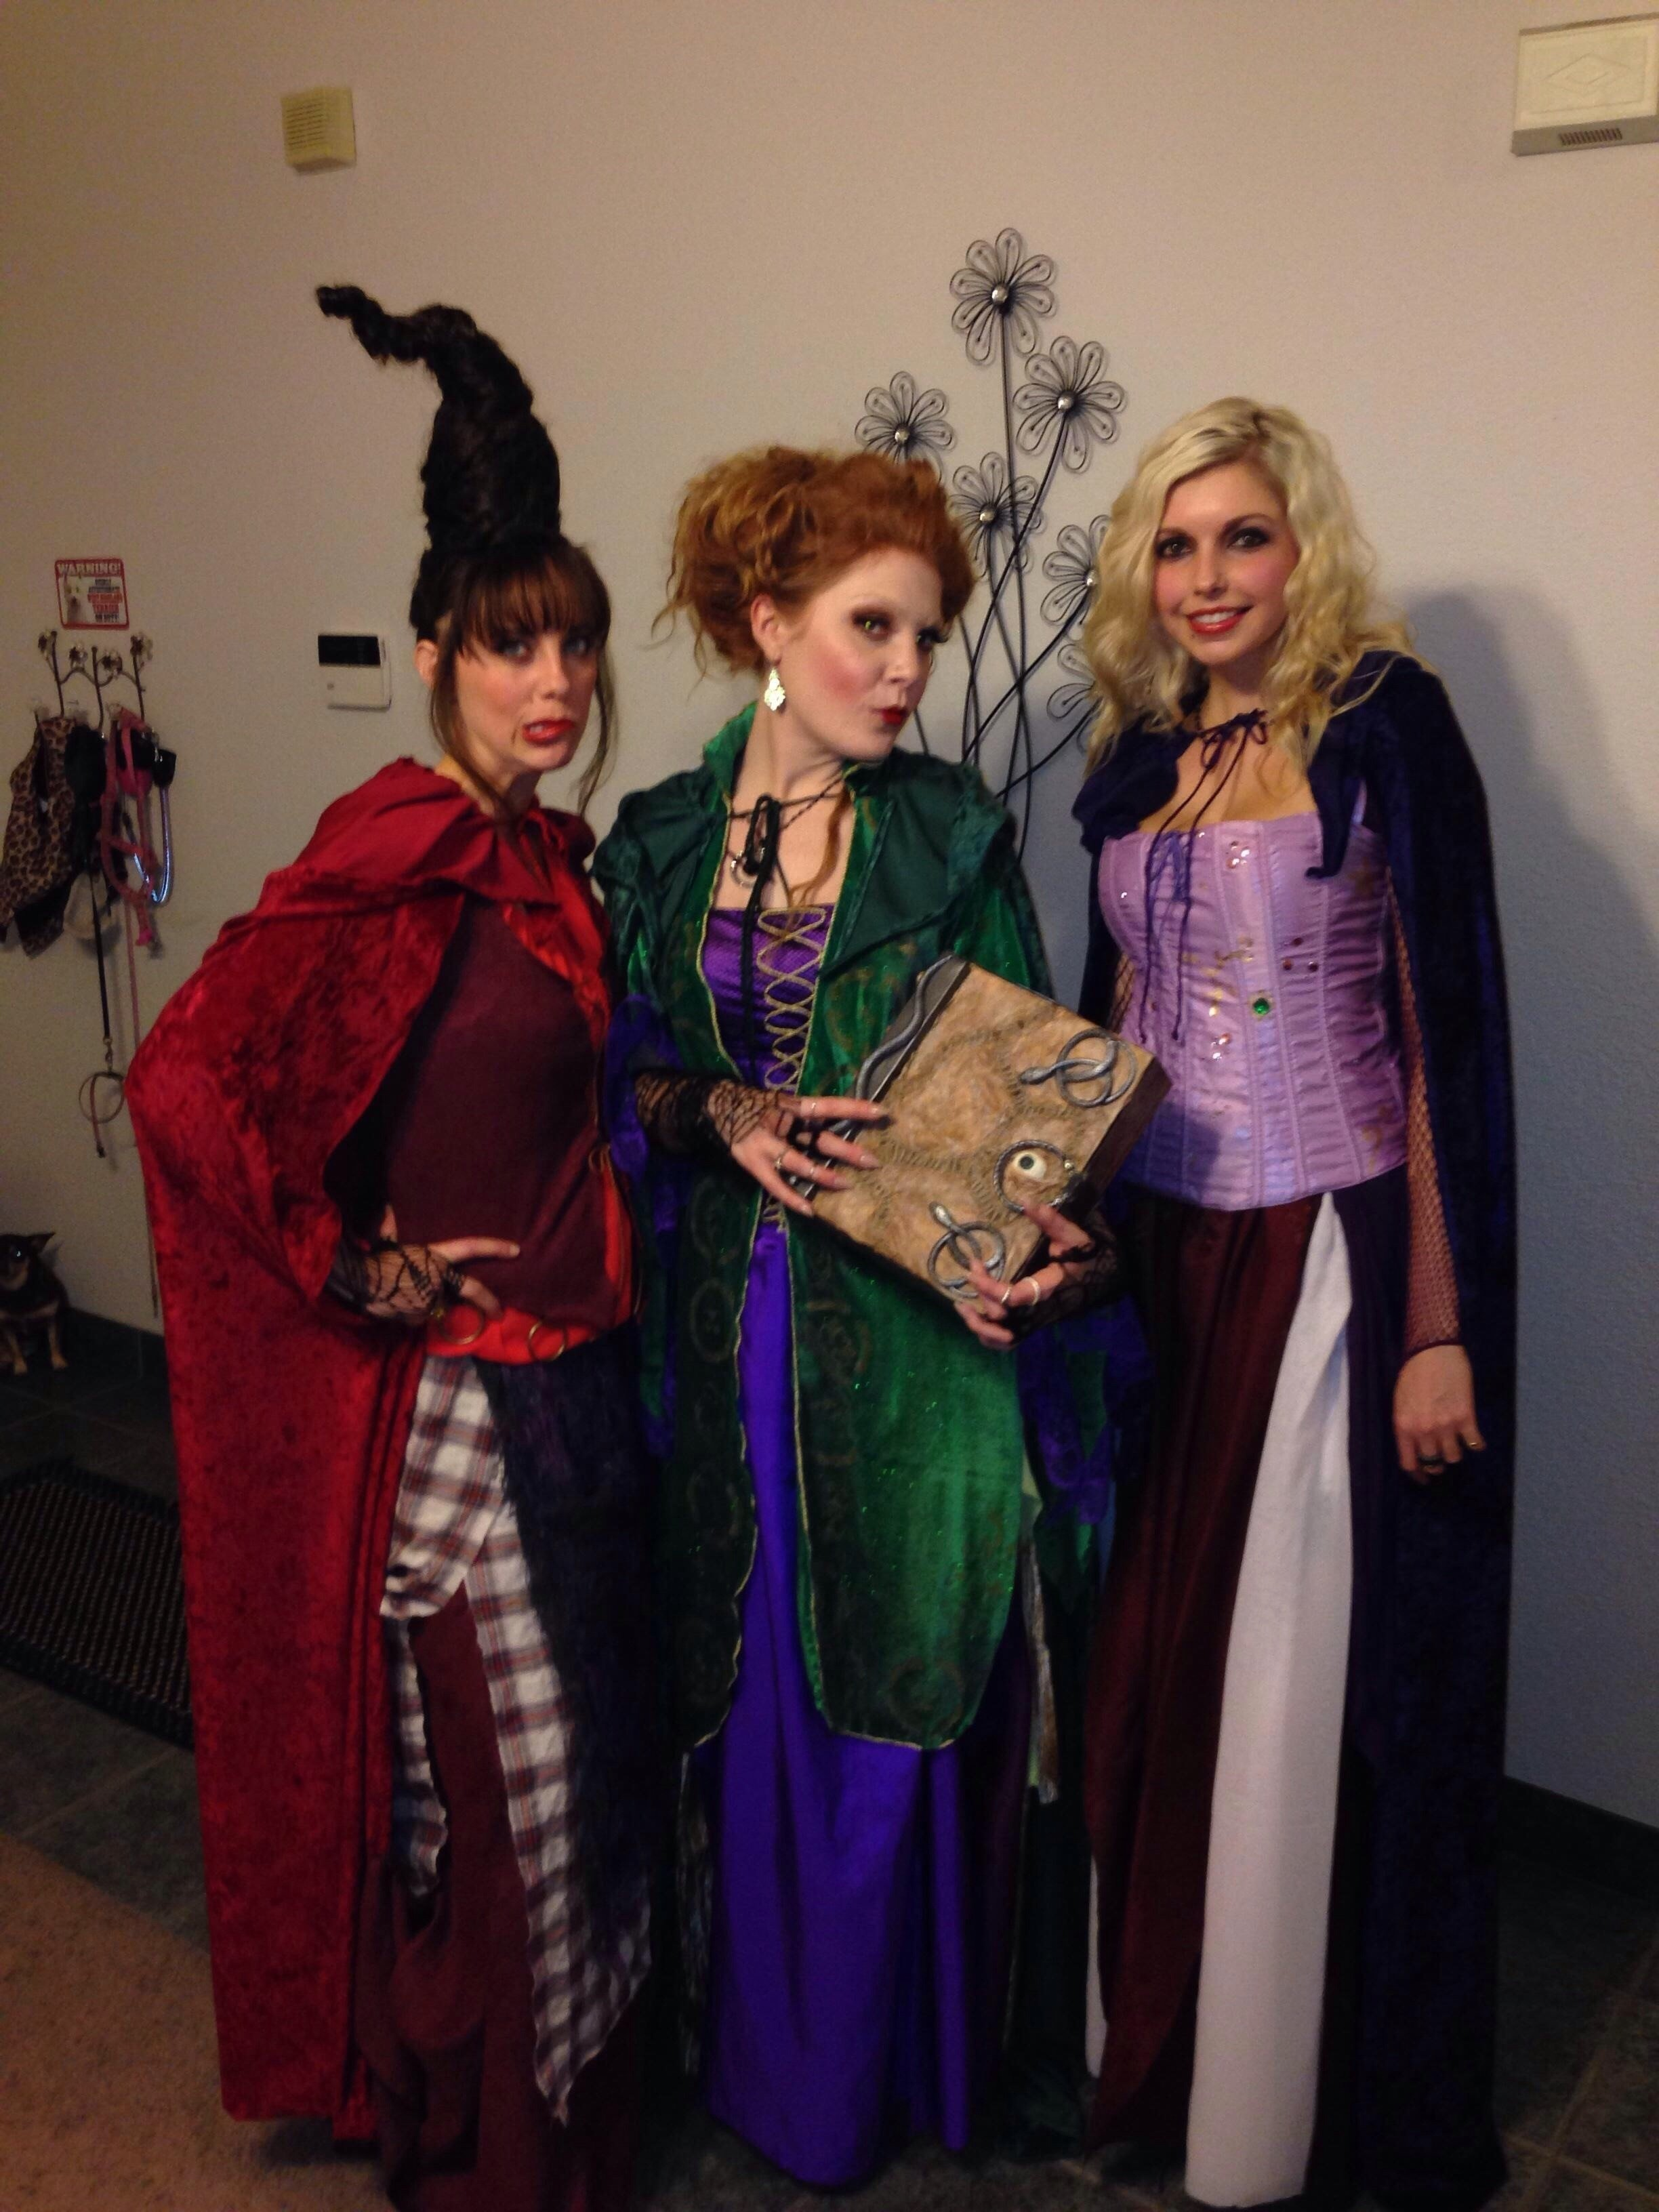 10 Perfect Good Costume Ideas For Groups 35 fun group halloween costumes for you and your friends sanderson 2 2020